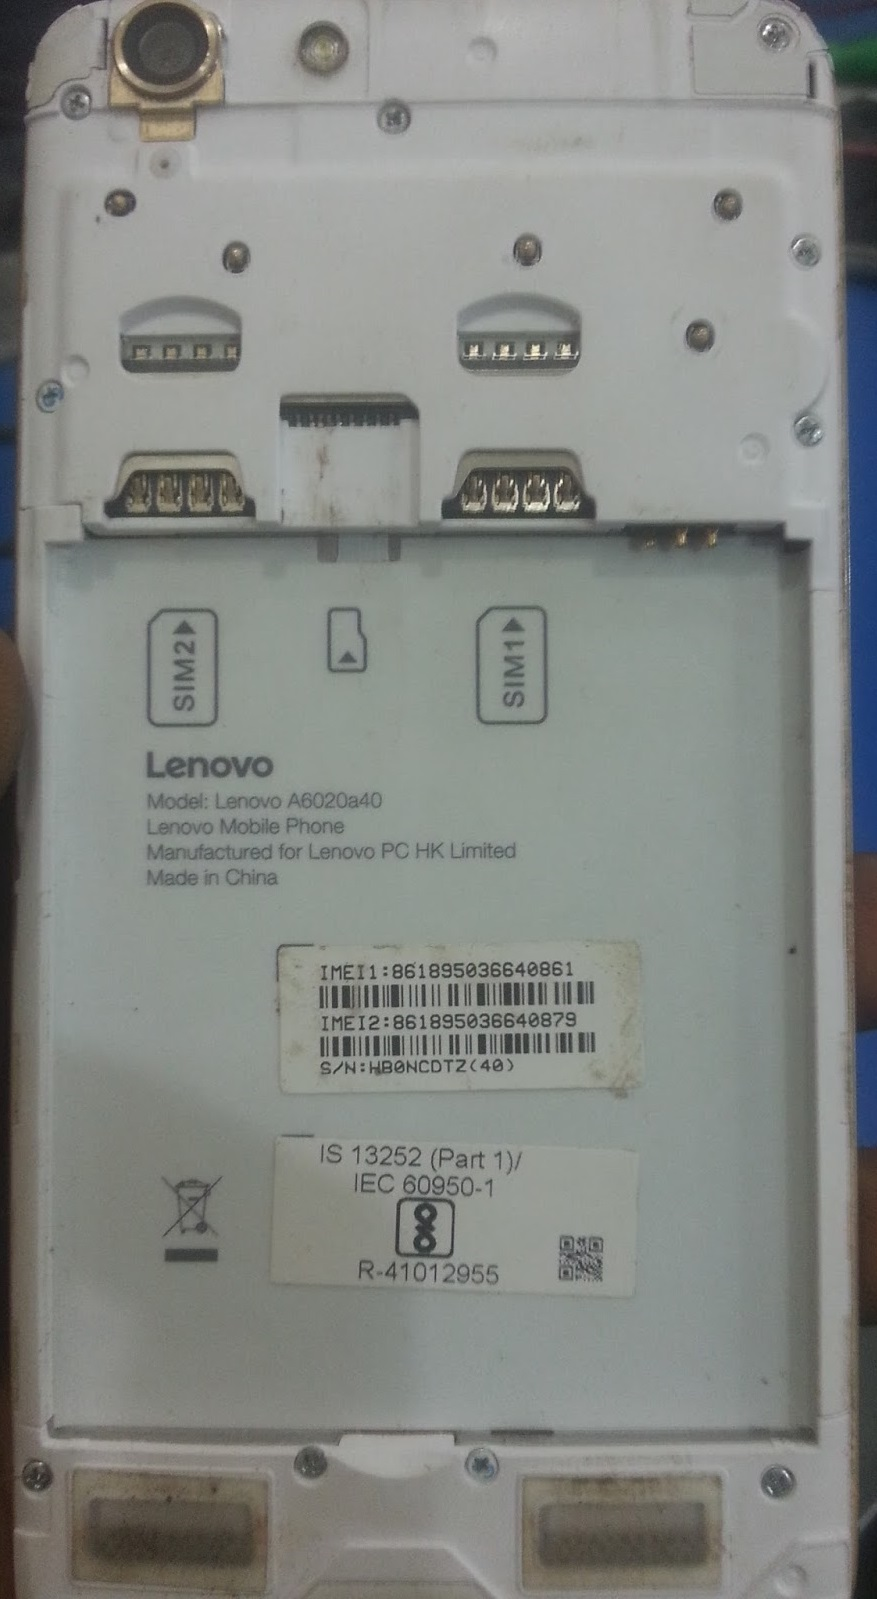 Lenovo A6020a40 Firmware Flash File Stock Rom Qualcomm Tested 100